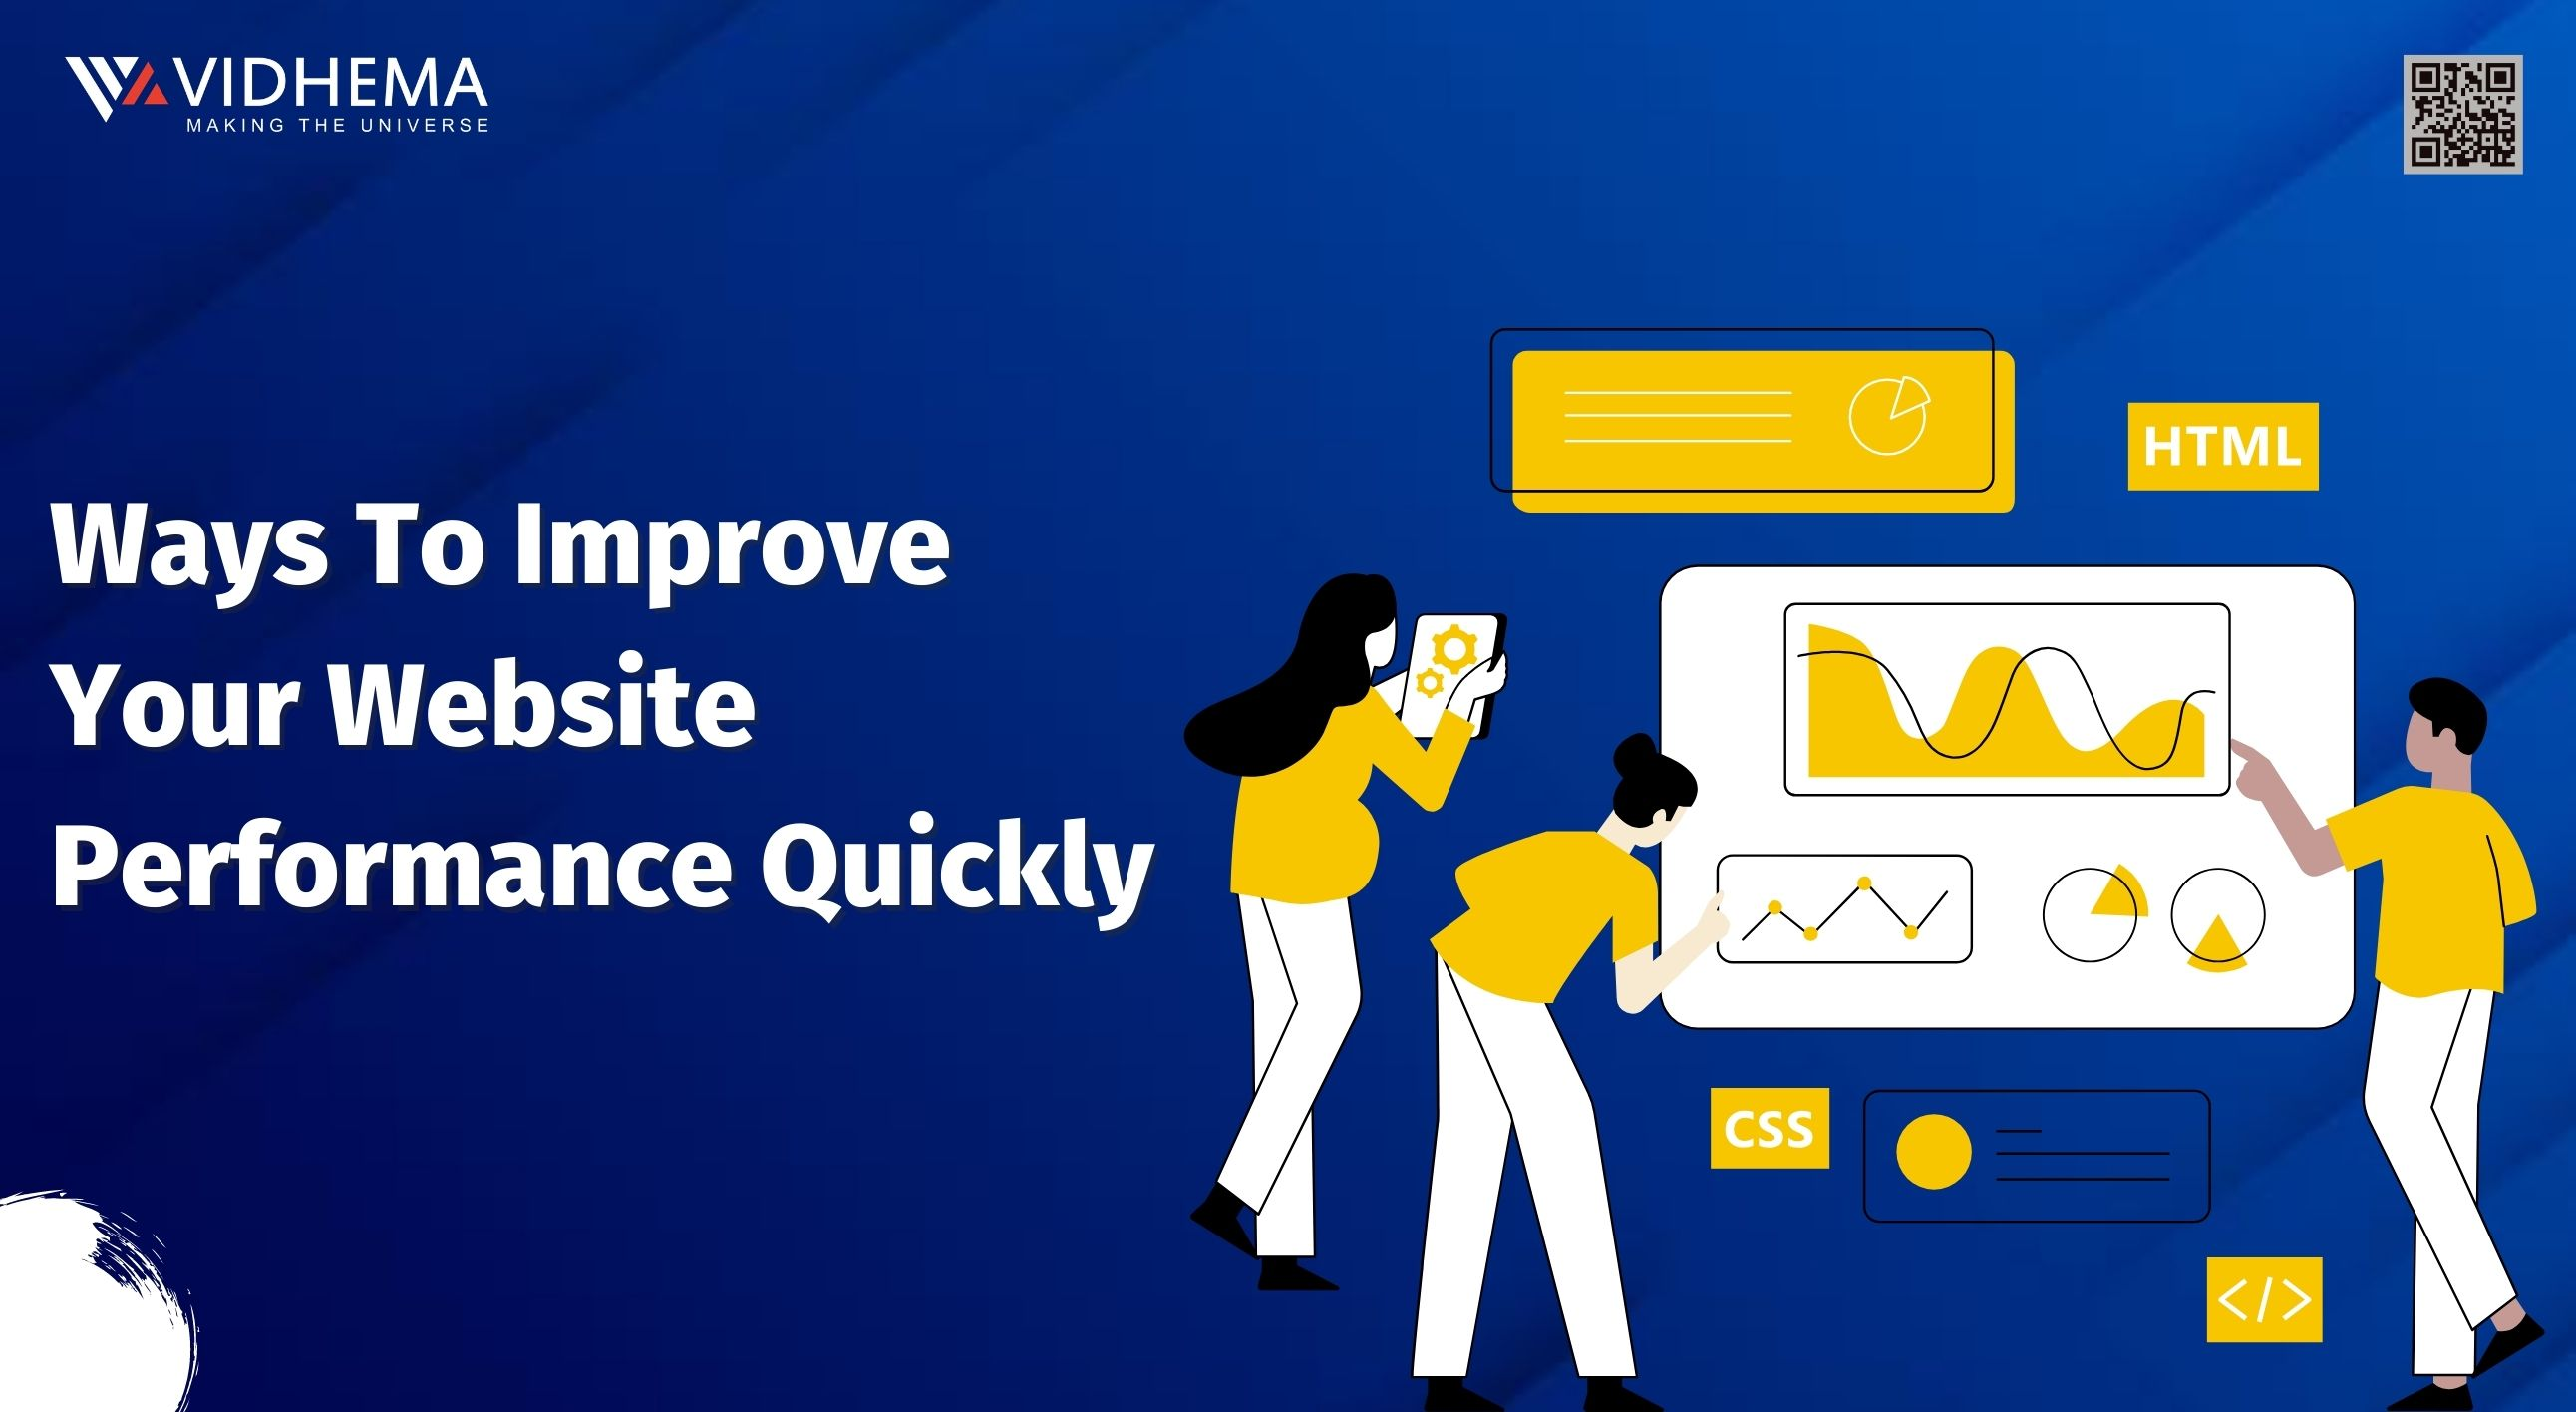 Ways To Improve Your Website Performance Quickly